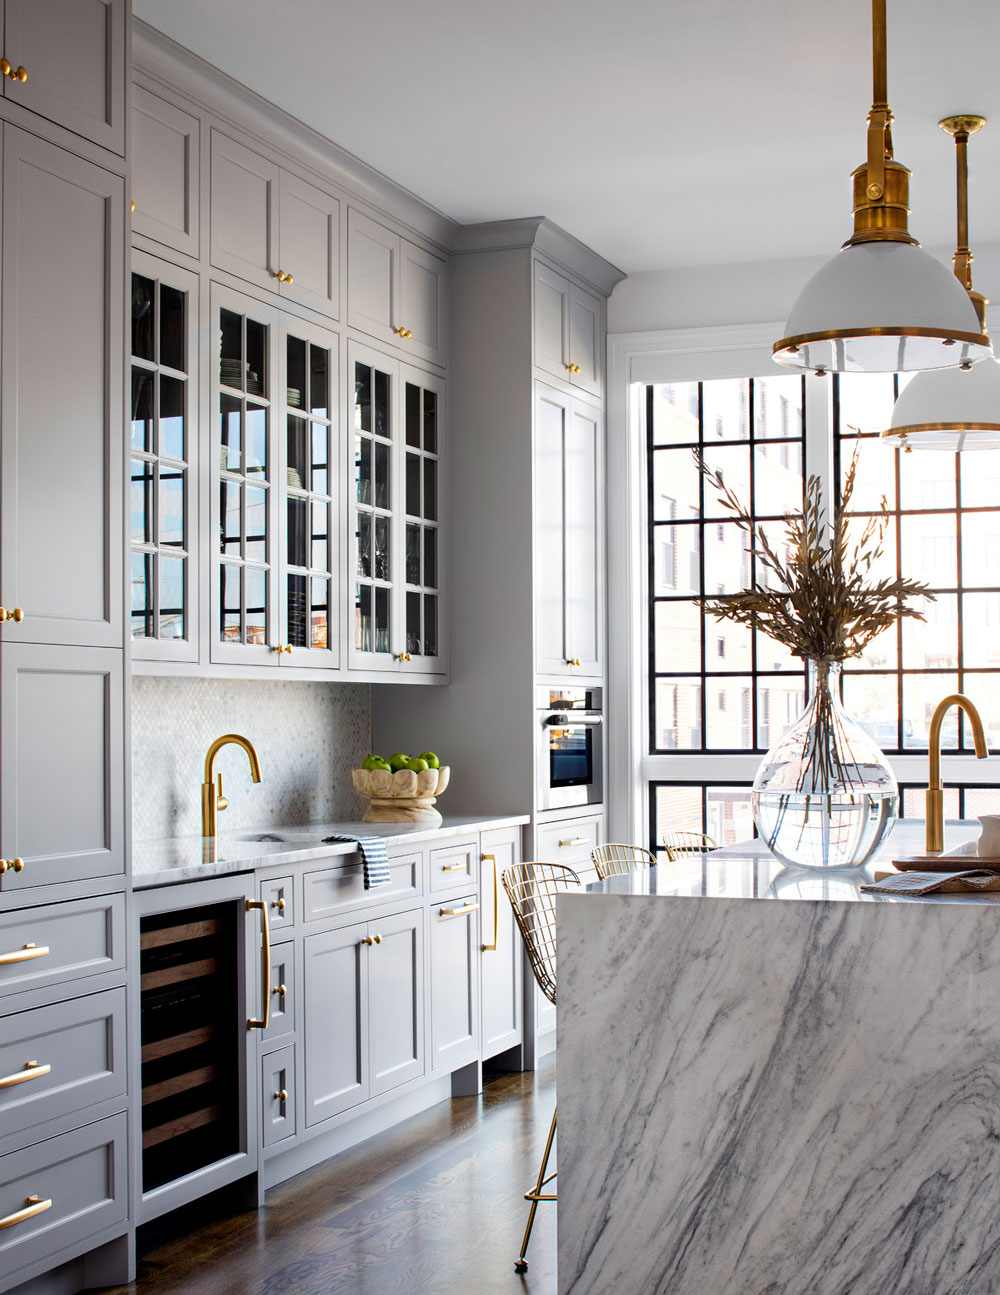 Inset Kitchen Cabinets Crystal CabiPromotion   5% off Inset Cabinetry   JM Kitchen